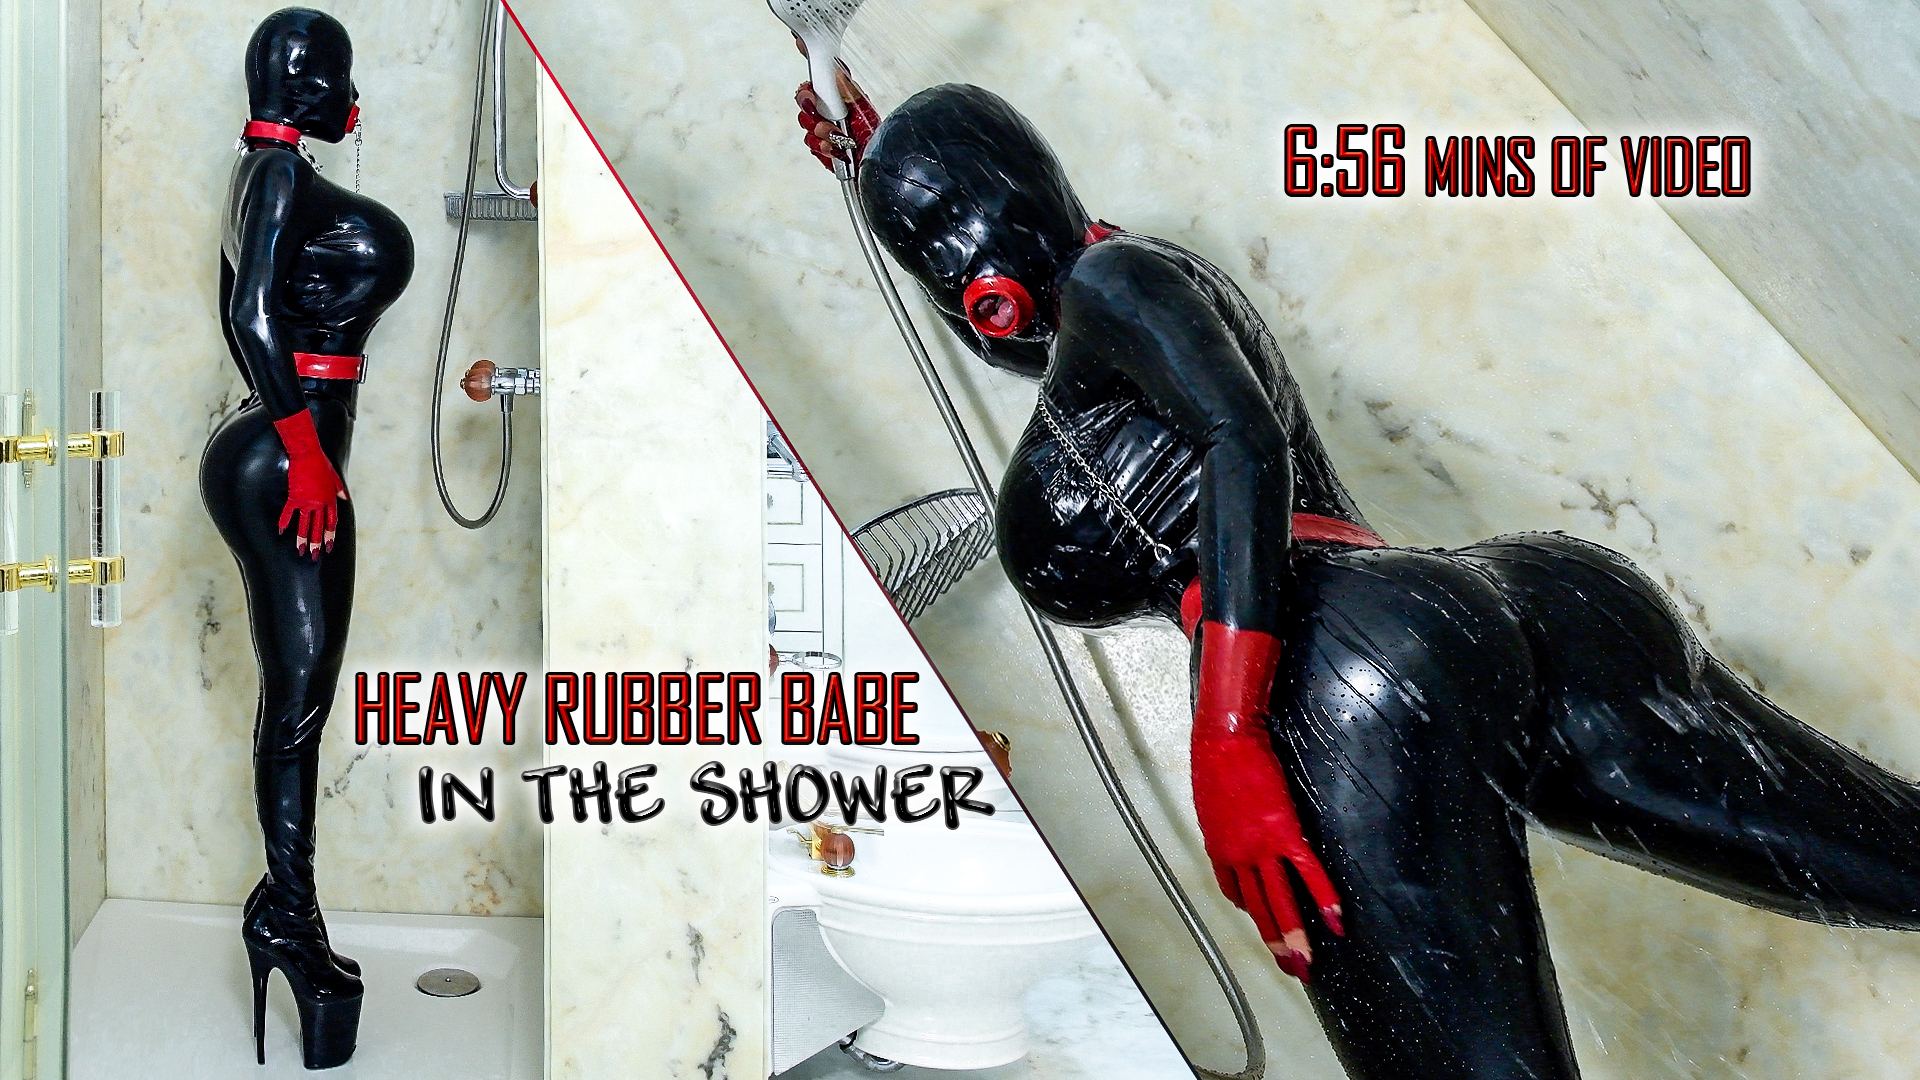 Heavy Rubber Babe in the Shower